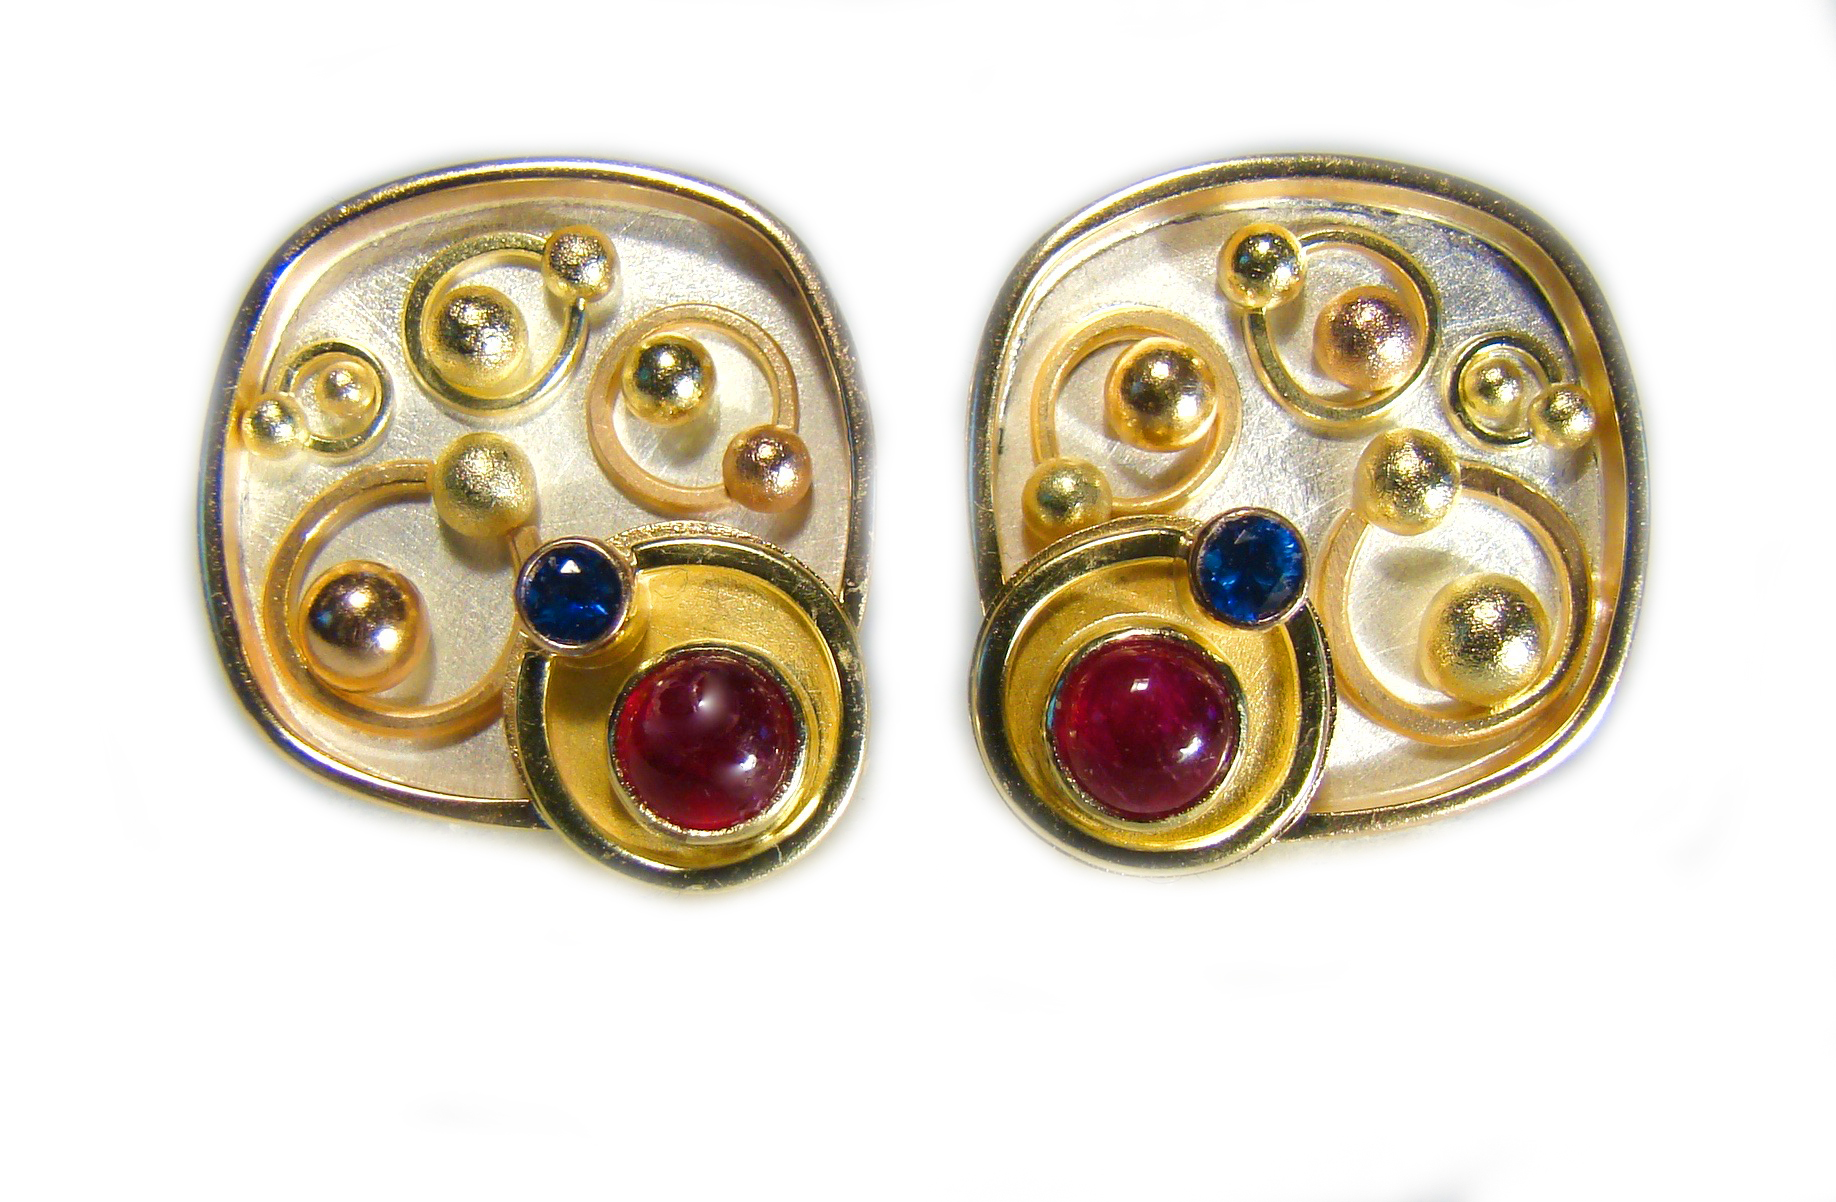 Ruby+Sapphire+Earrings+%23699.jpg